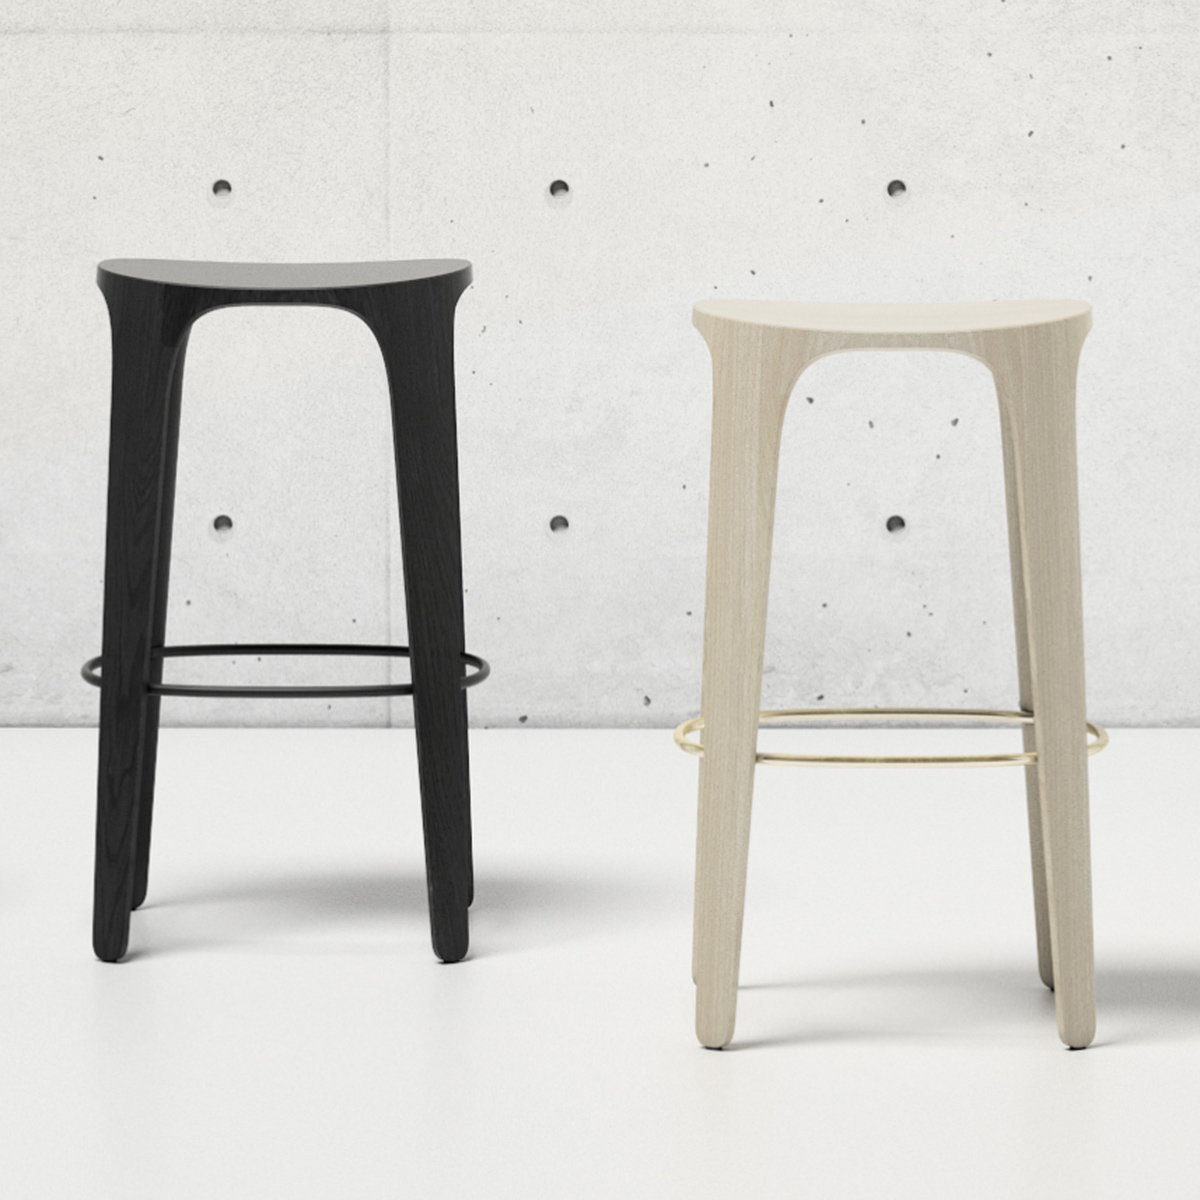 HBF Introduces Jueki Stool Series Inspired by Nature